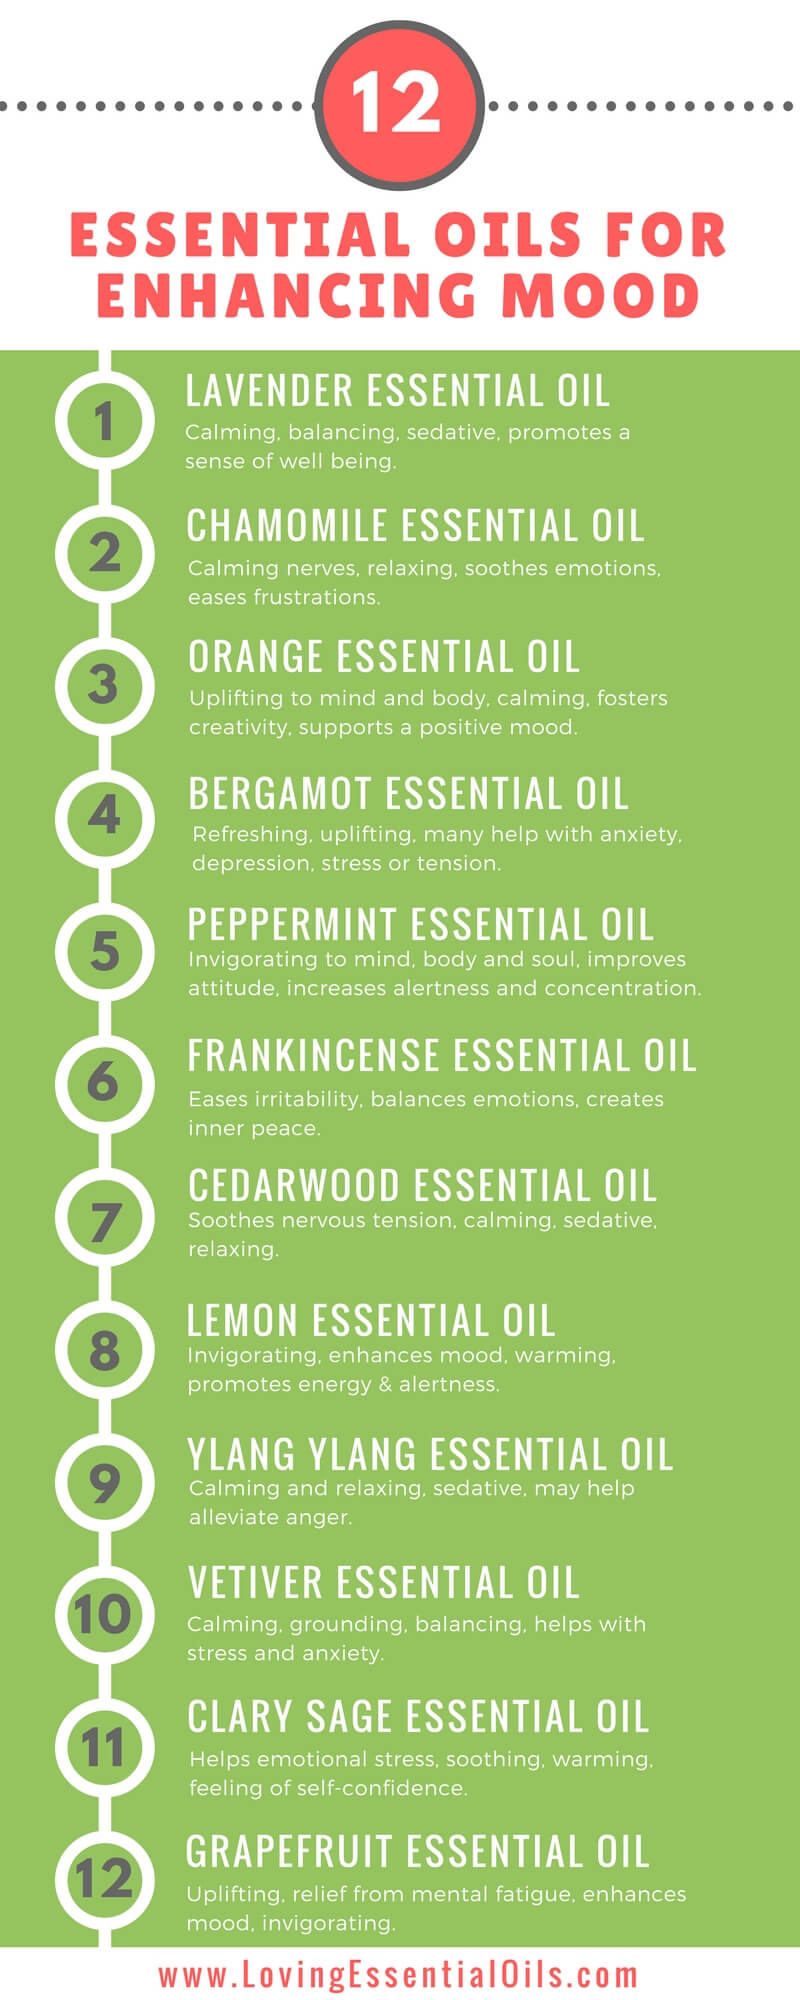 8 Aromatherapy Diffuser Blends To Enhance Your Mood